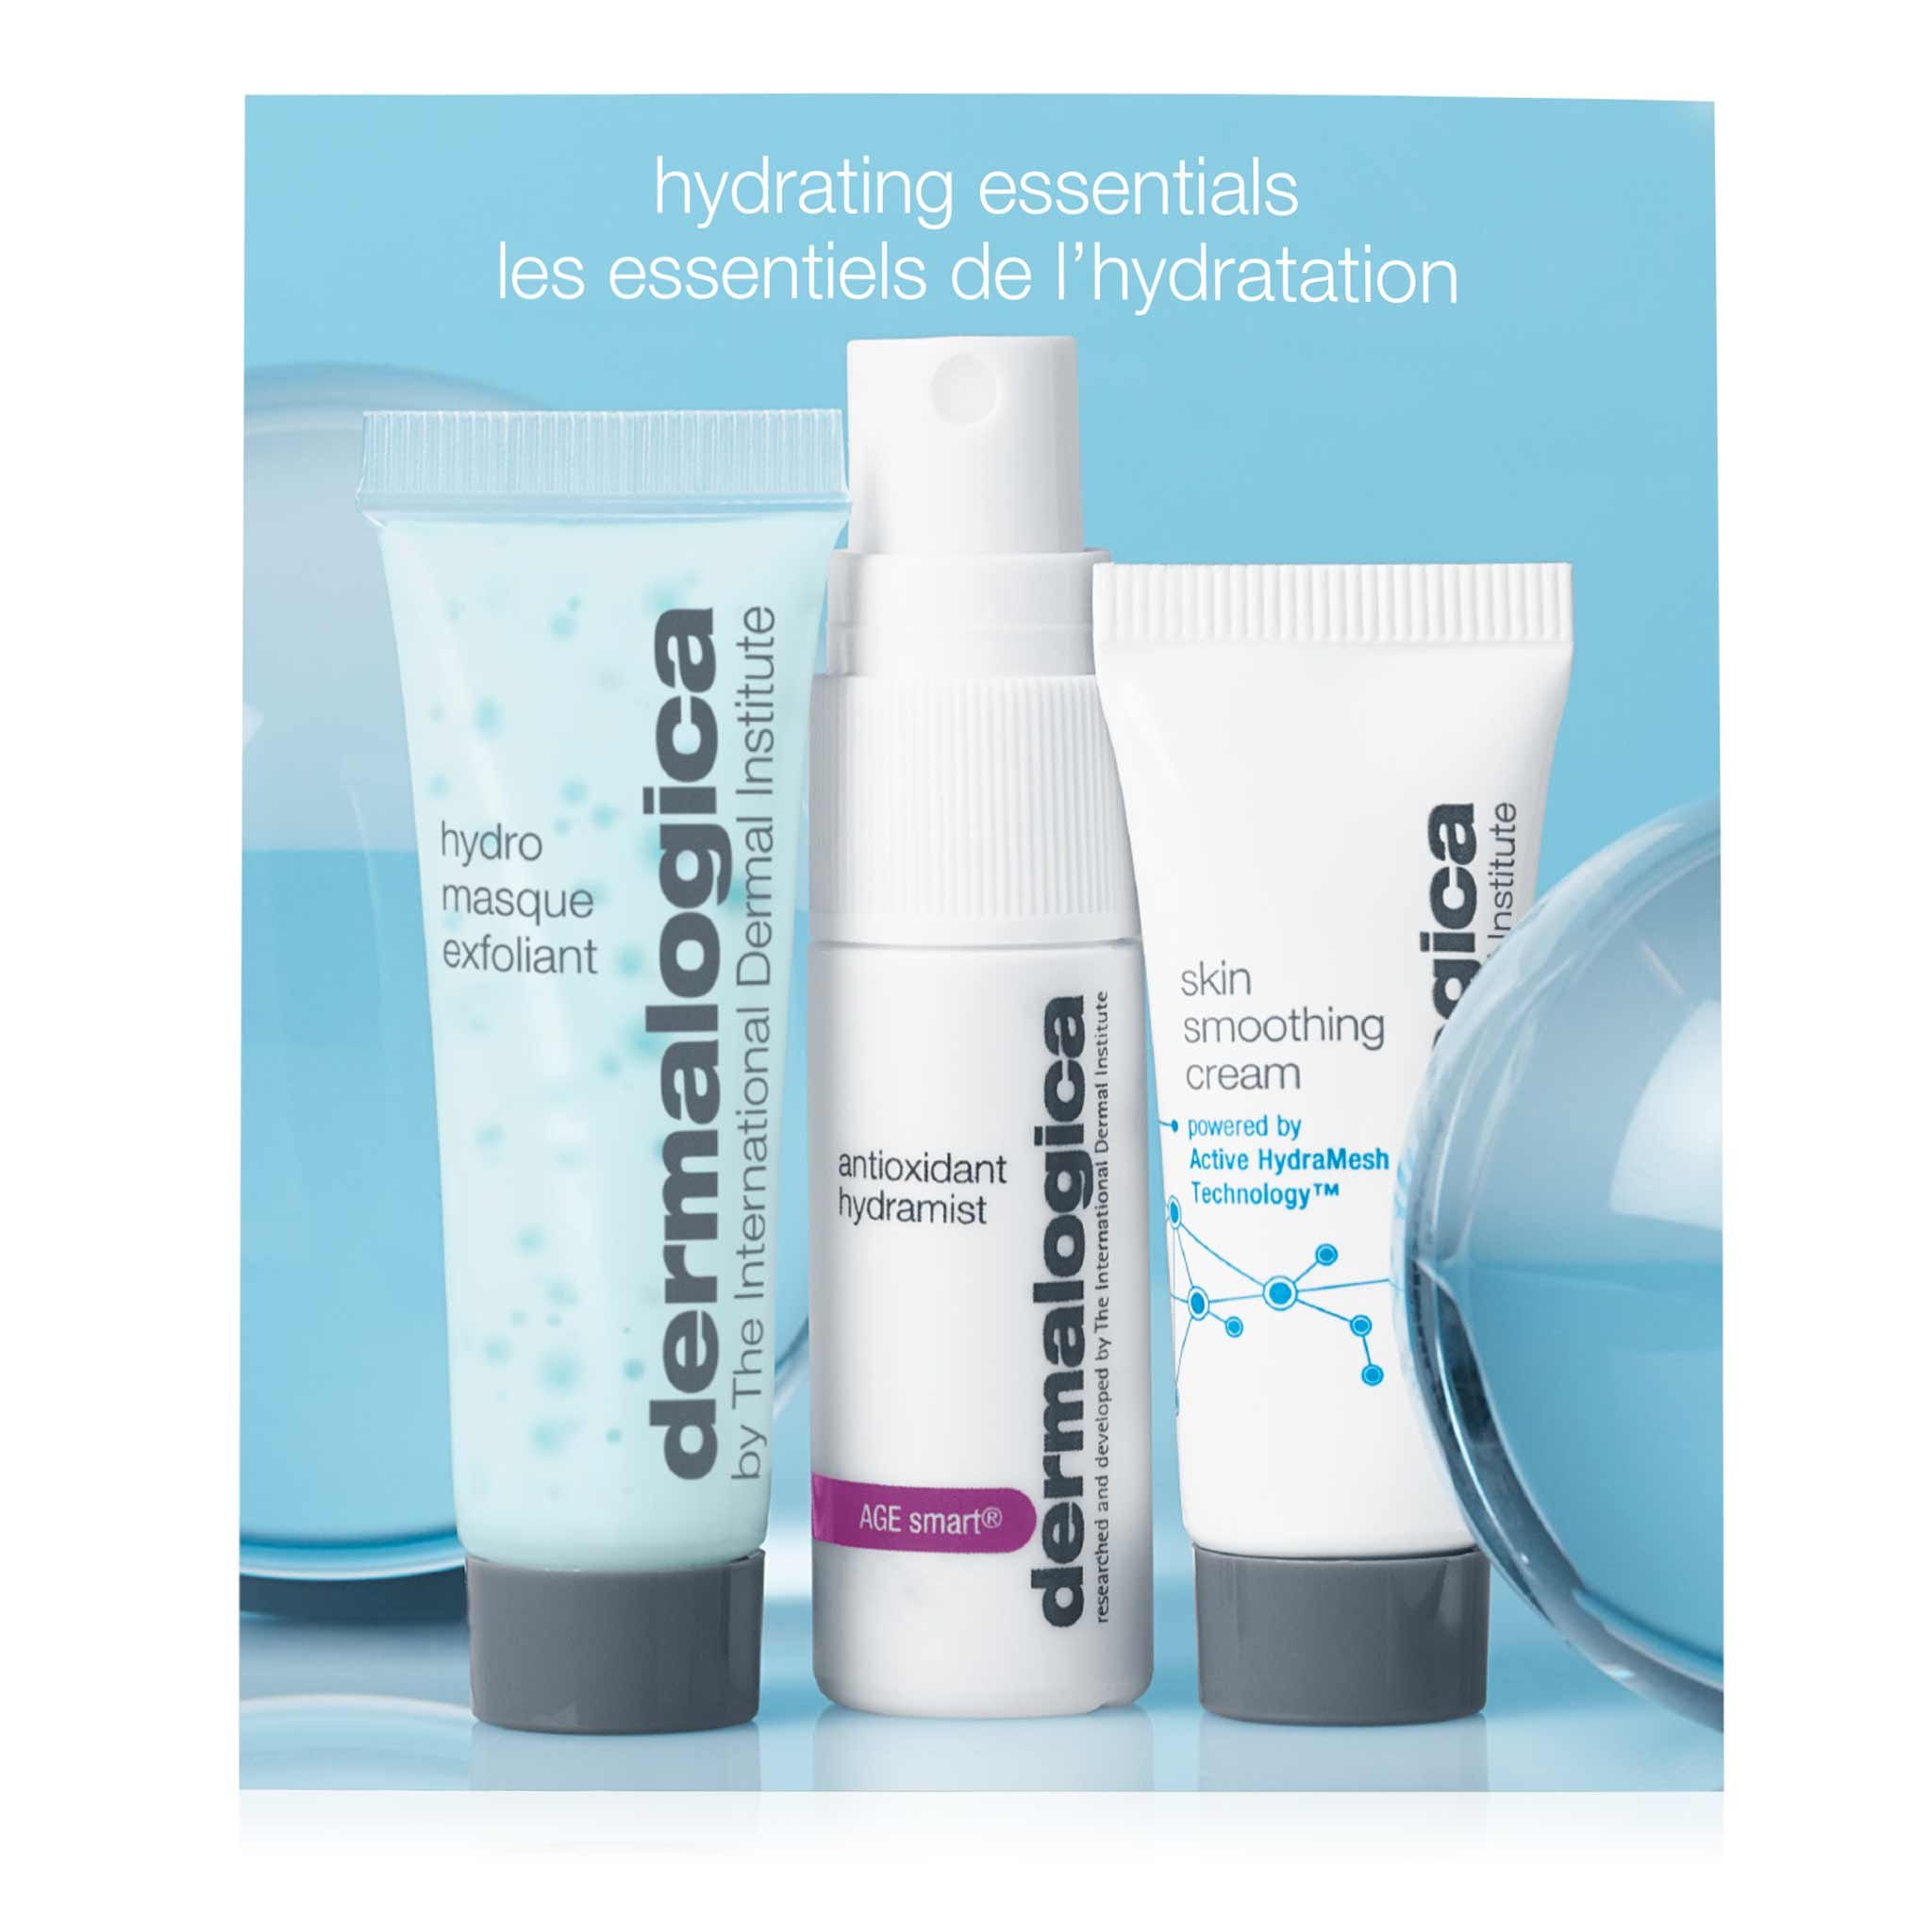 hydrating essentials gift